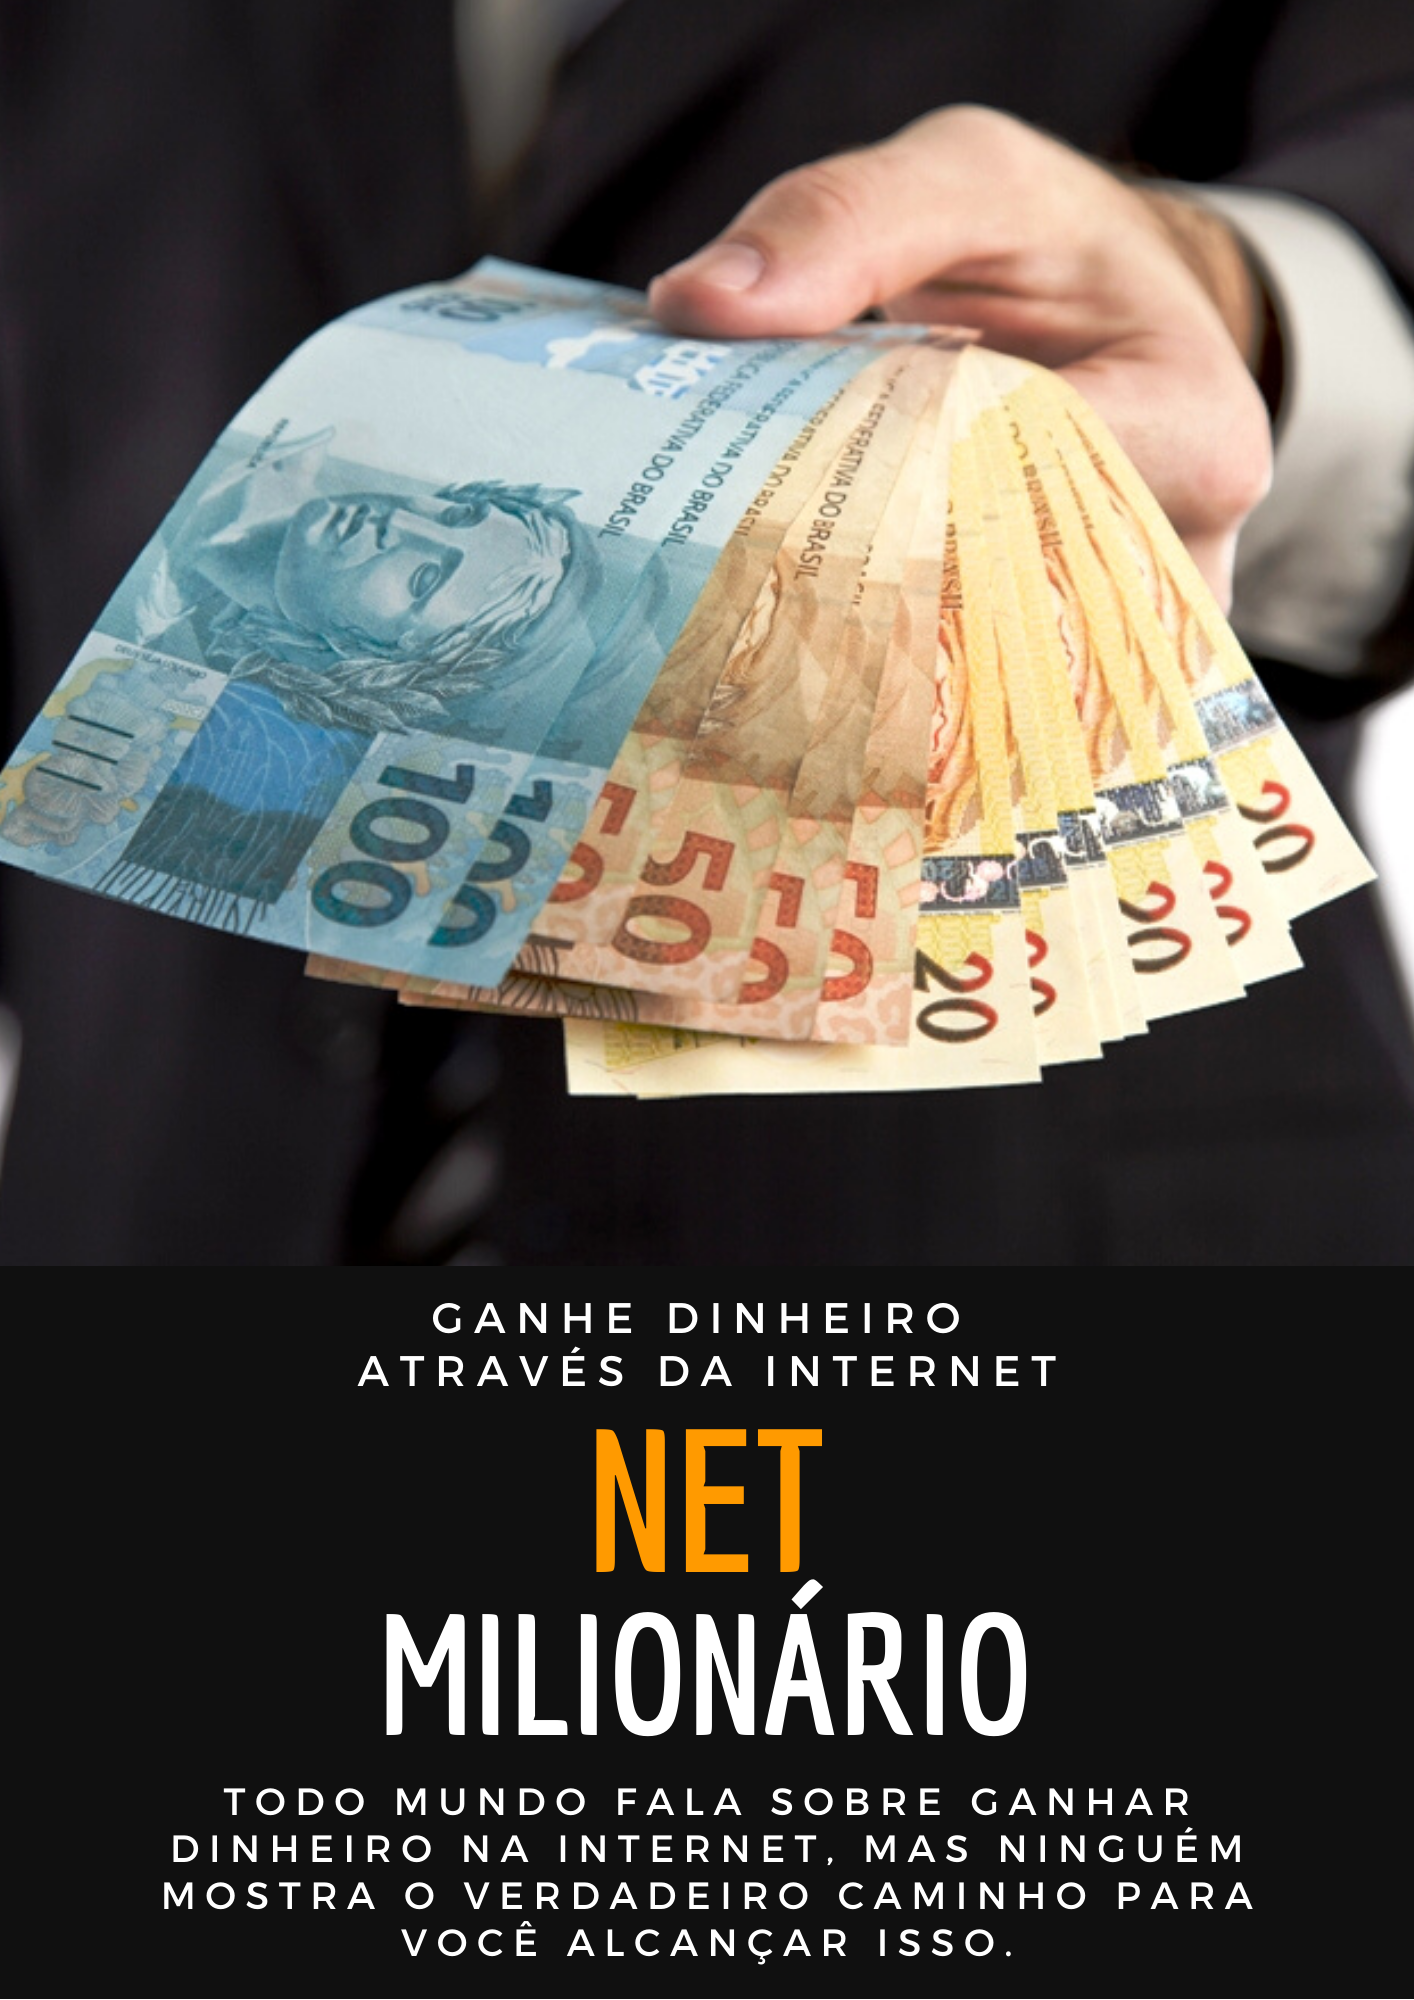 net milionário download gratis